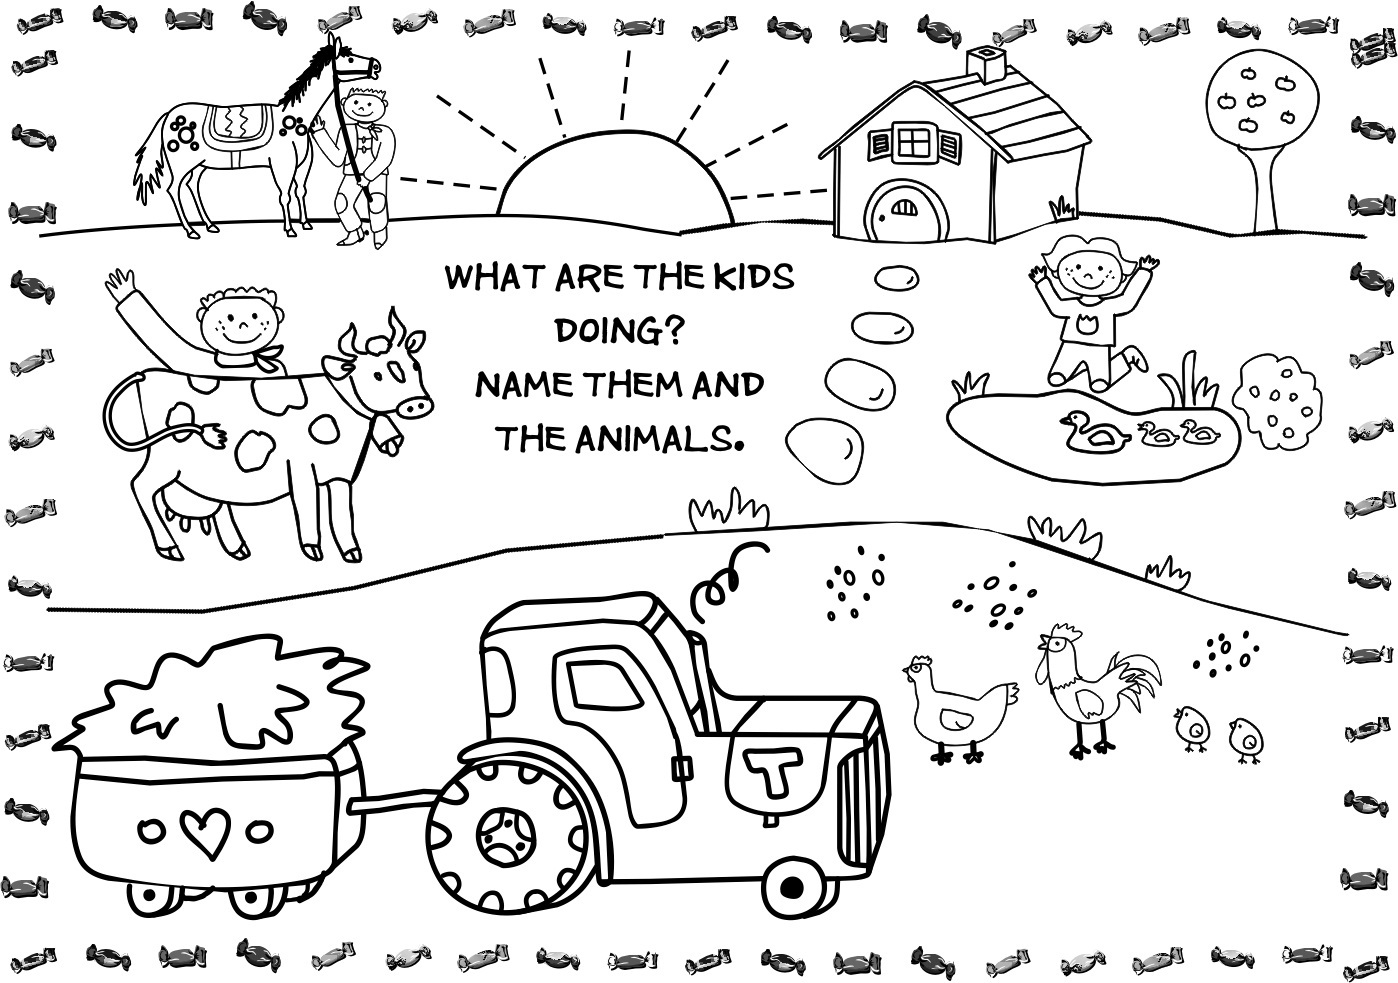 photo regarding Printable Farm Coloring Pages named Cost-free Printable Farm Animal Coloring Webpages For Youngsters